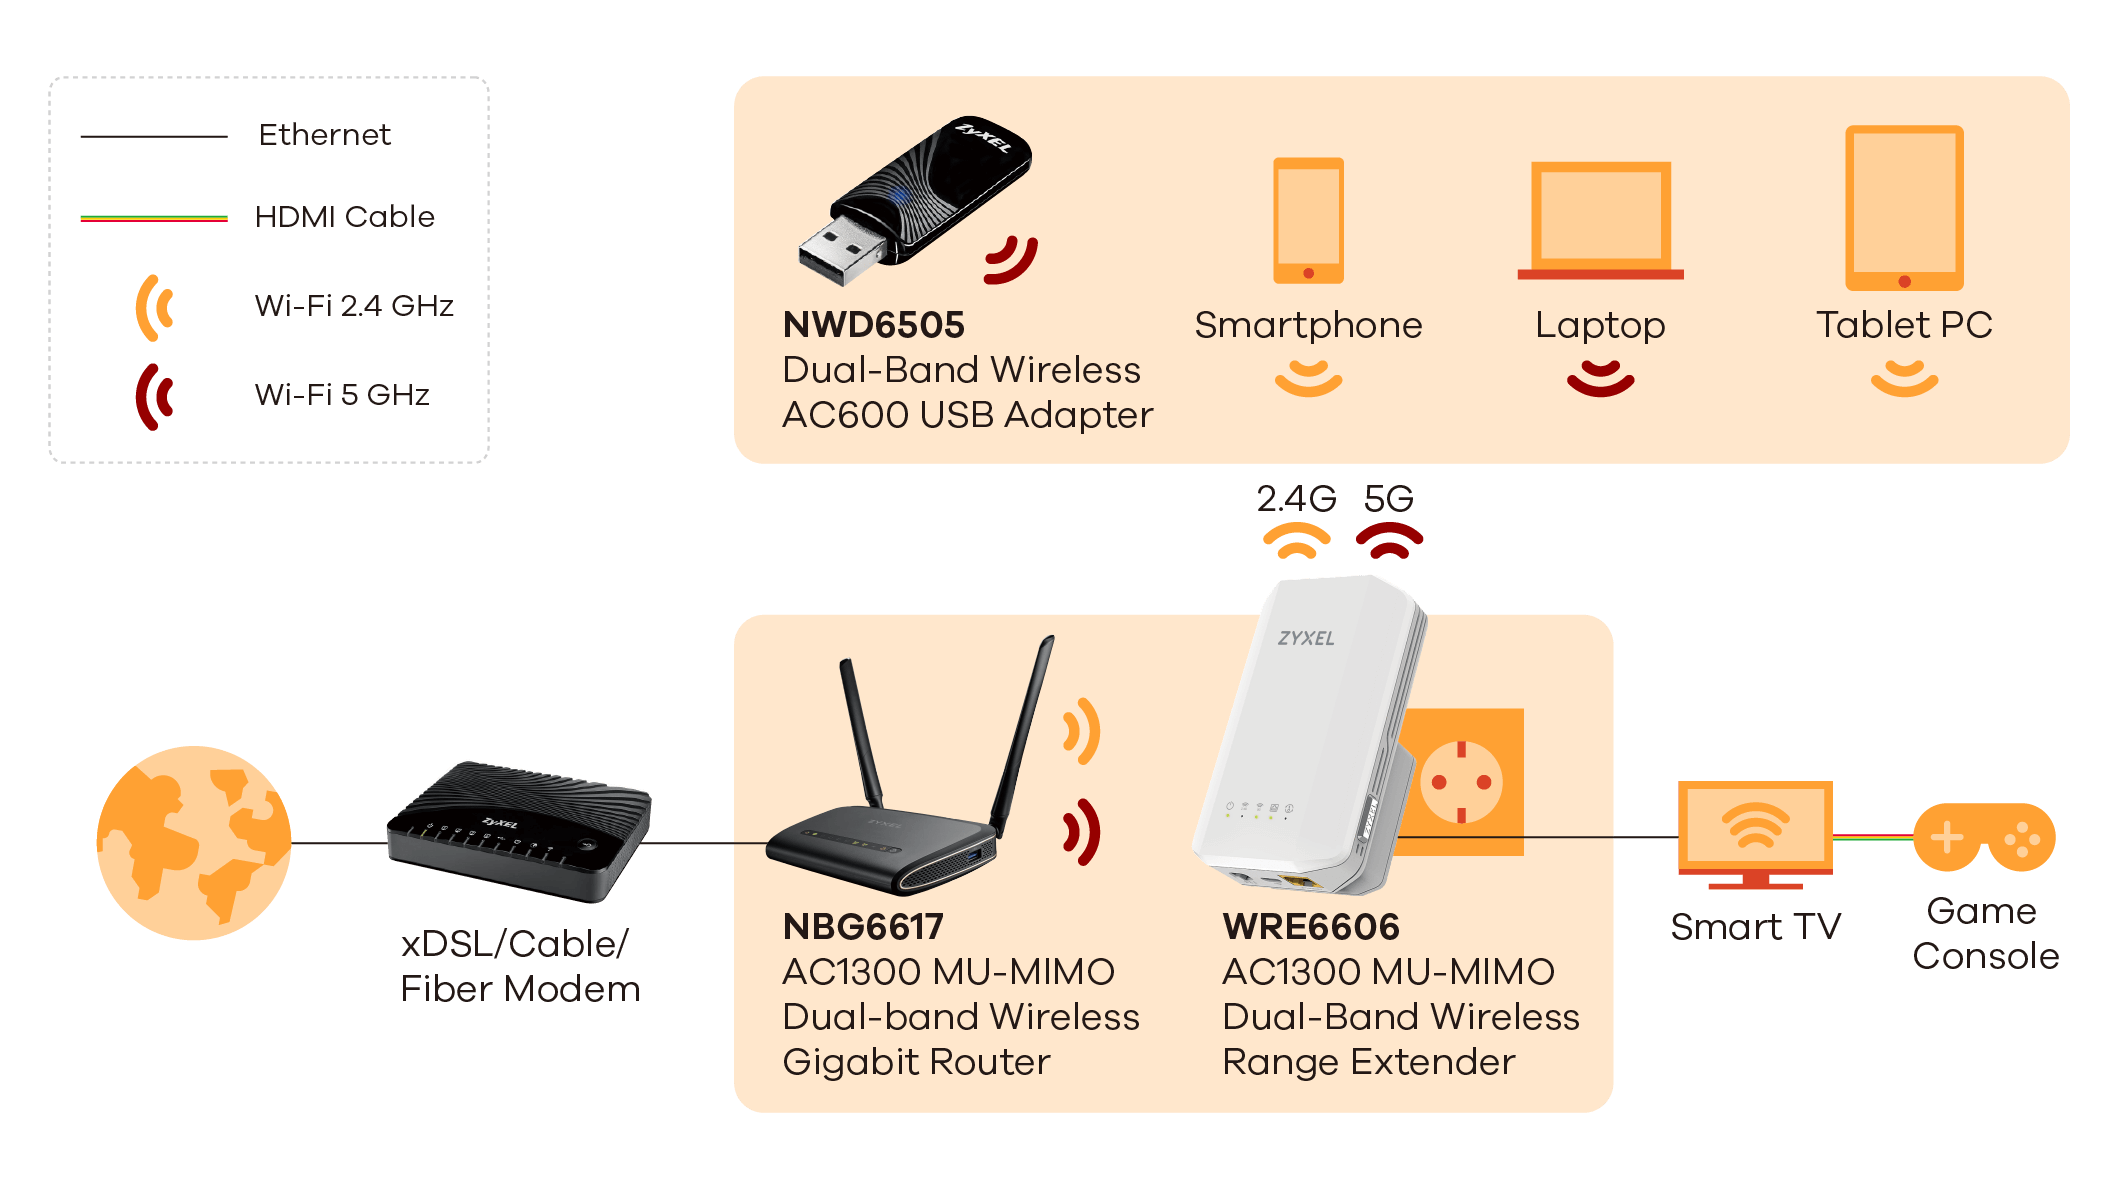 Wre6606 Ac1300 Mu Mimo Dual Band Wireless Range Extender Zyxel Set Up Printer Diagram Application